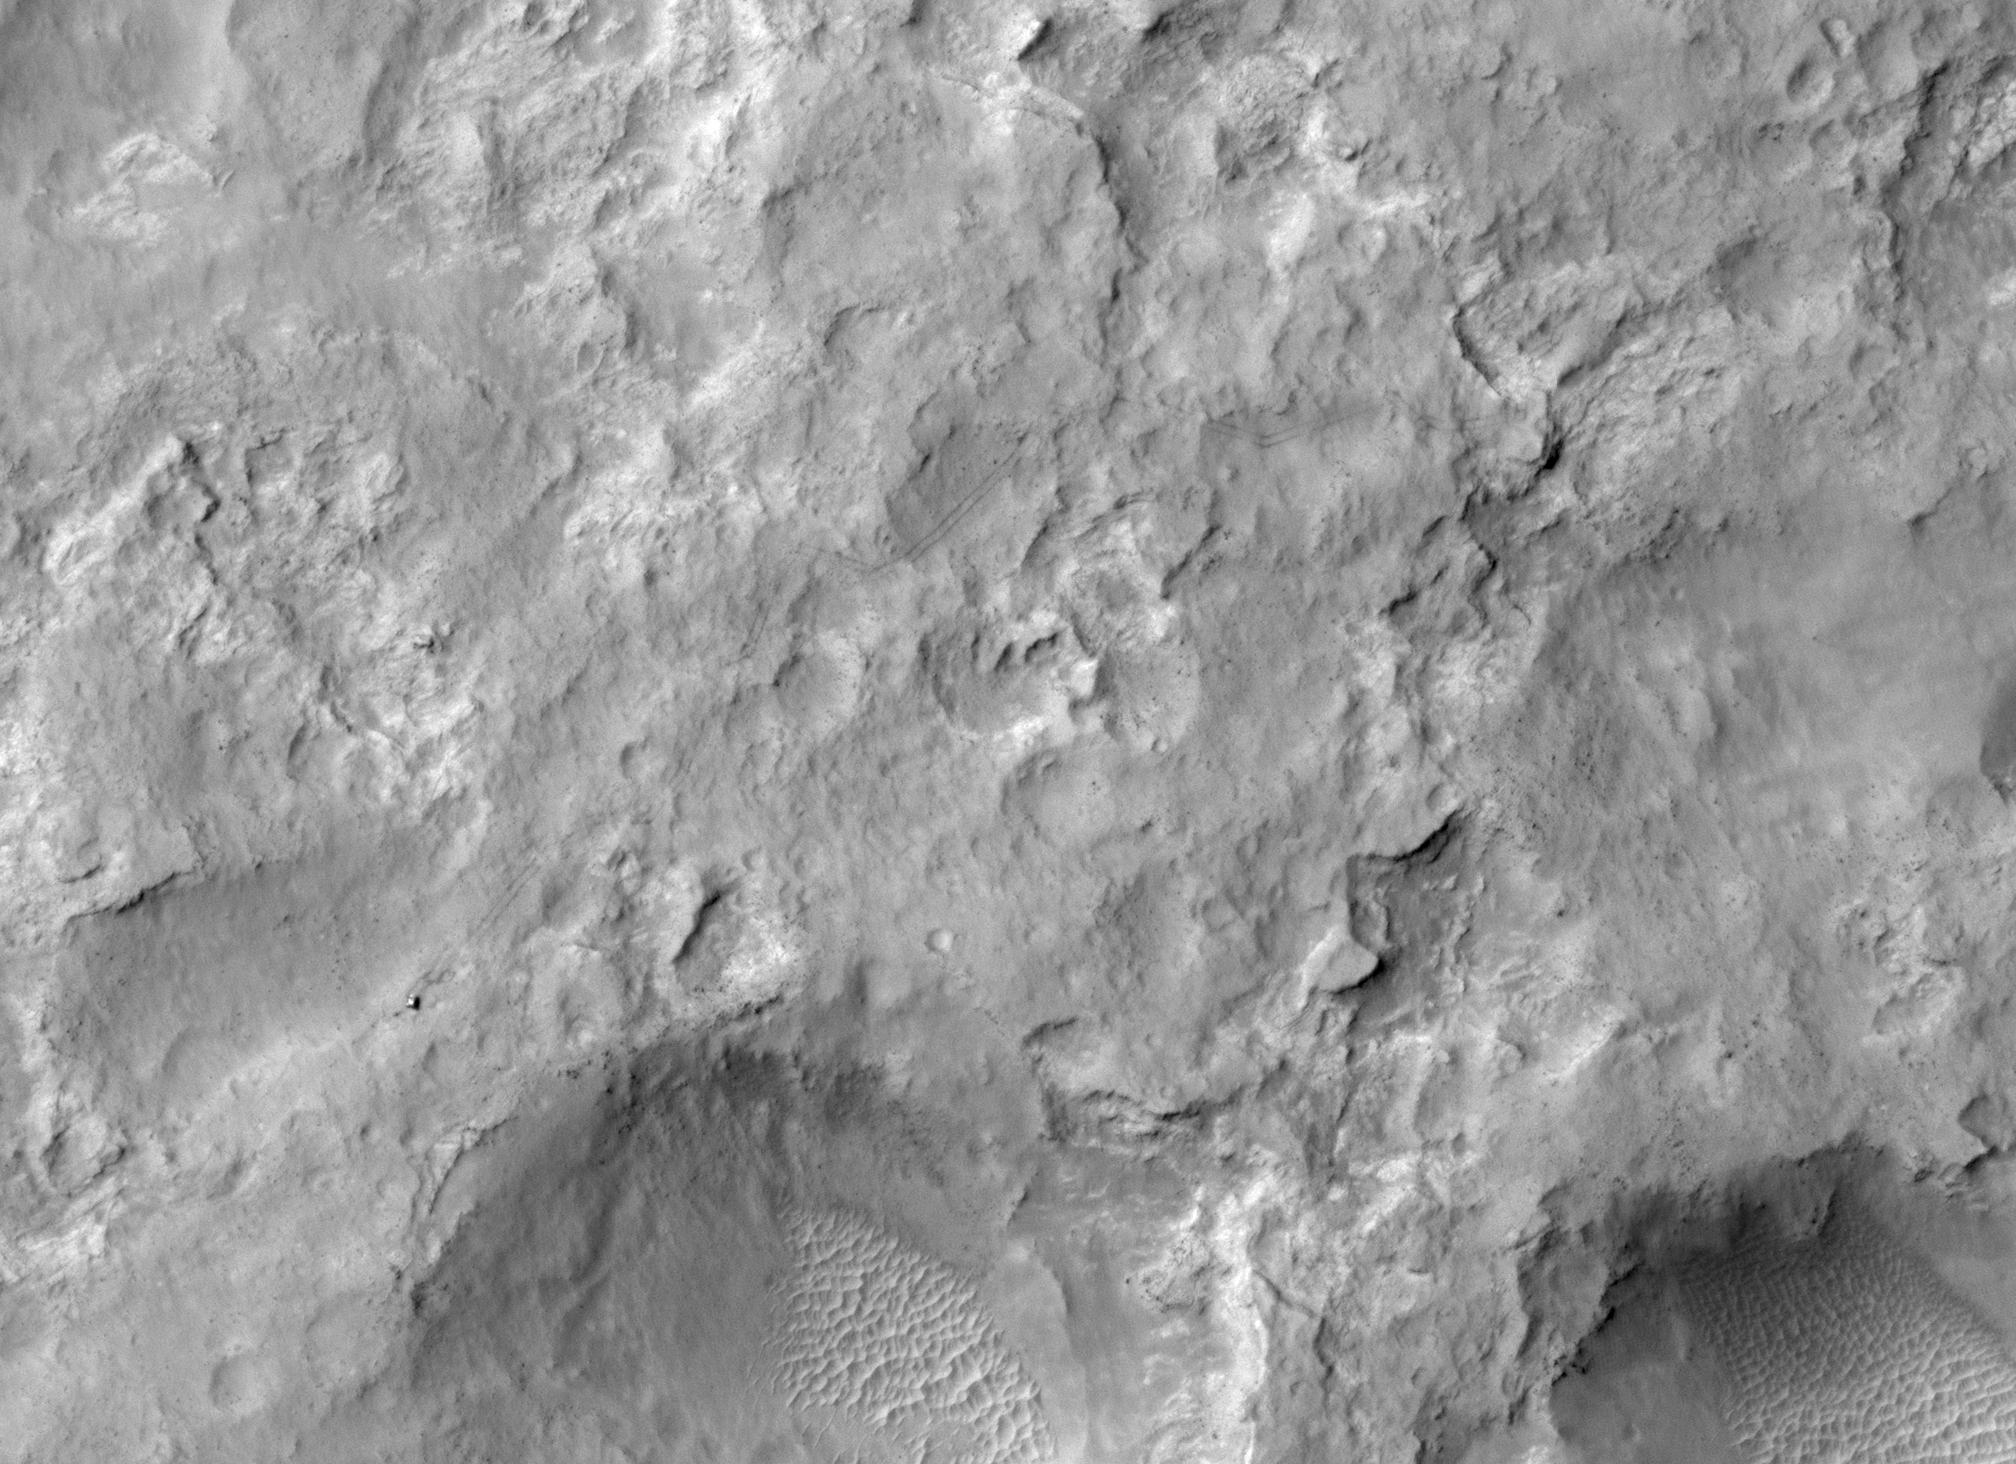 gale crater rover in mars - photo #7